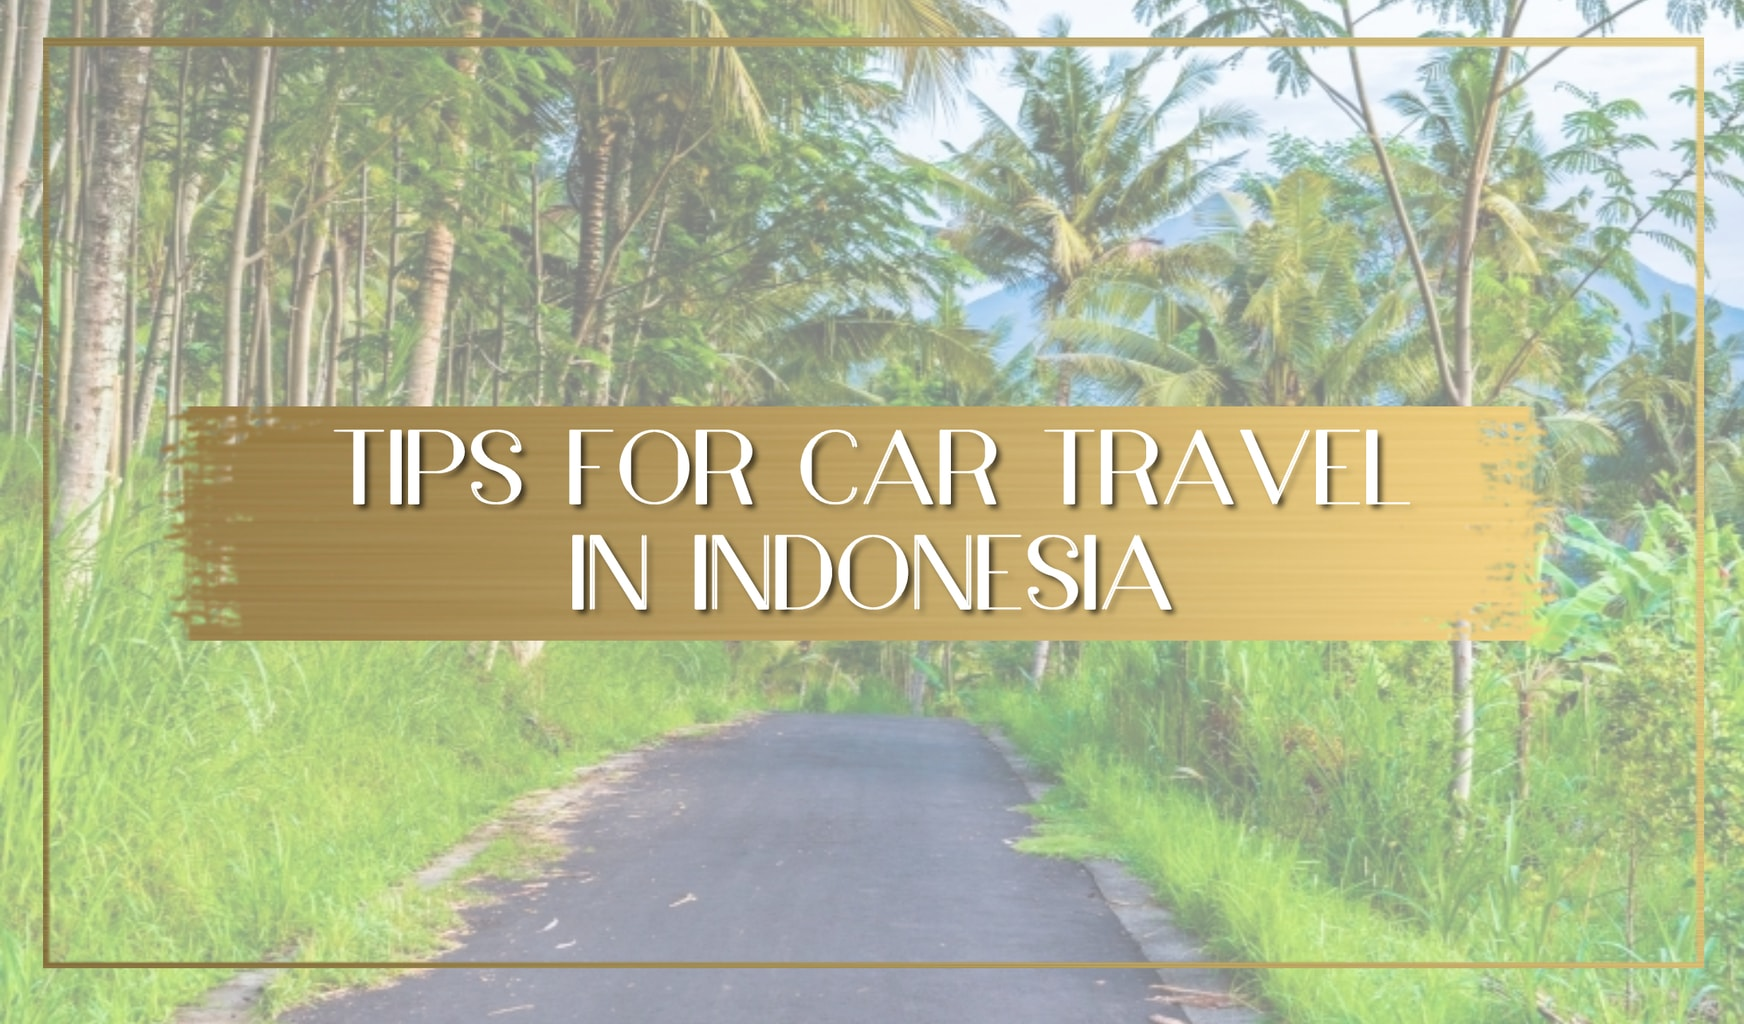 Tips for car traveling in Indonesia main